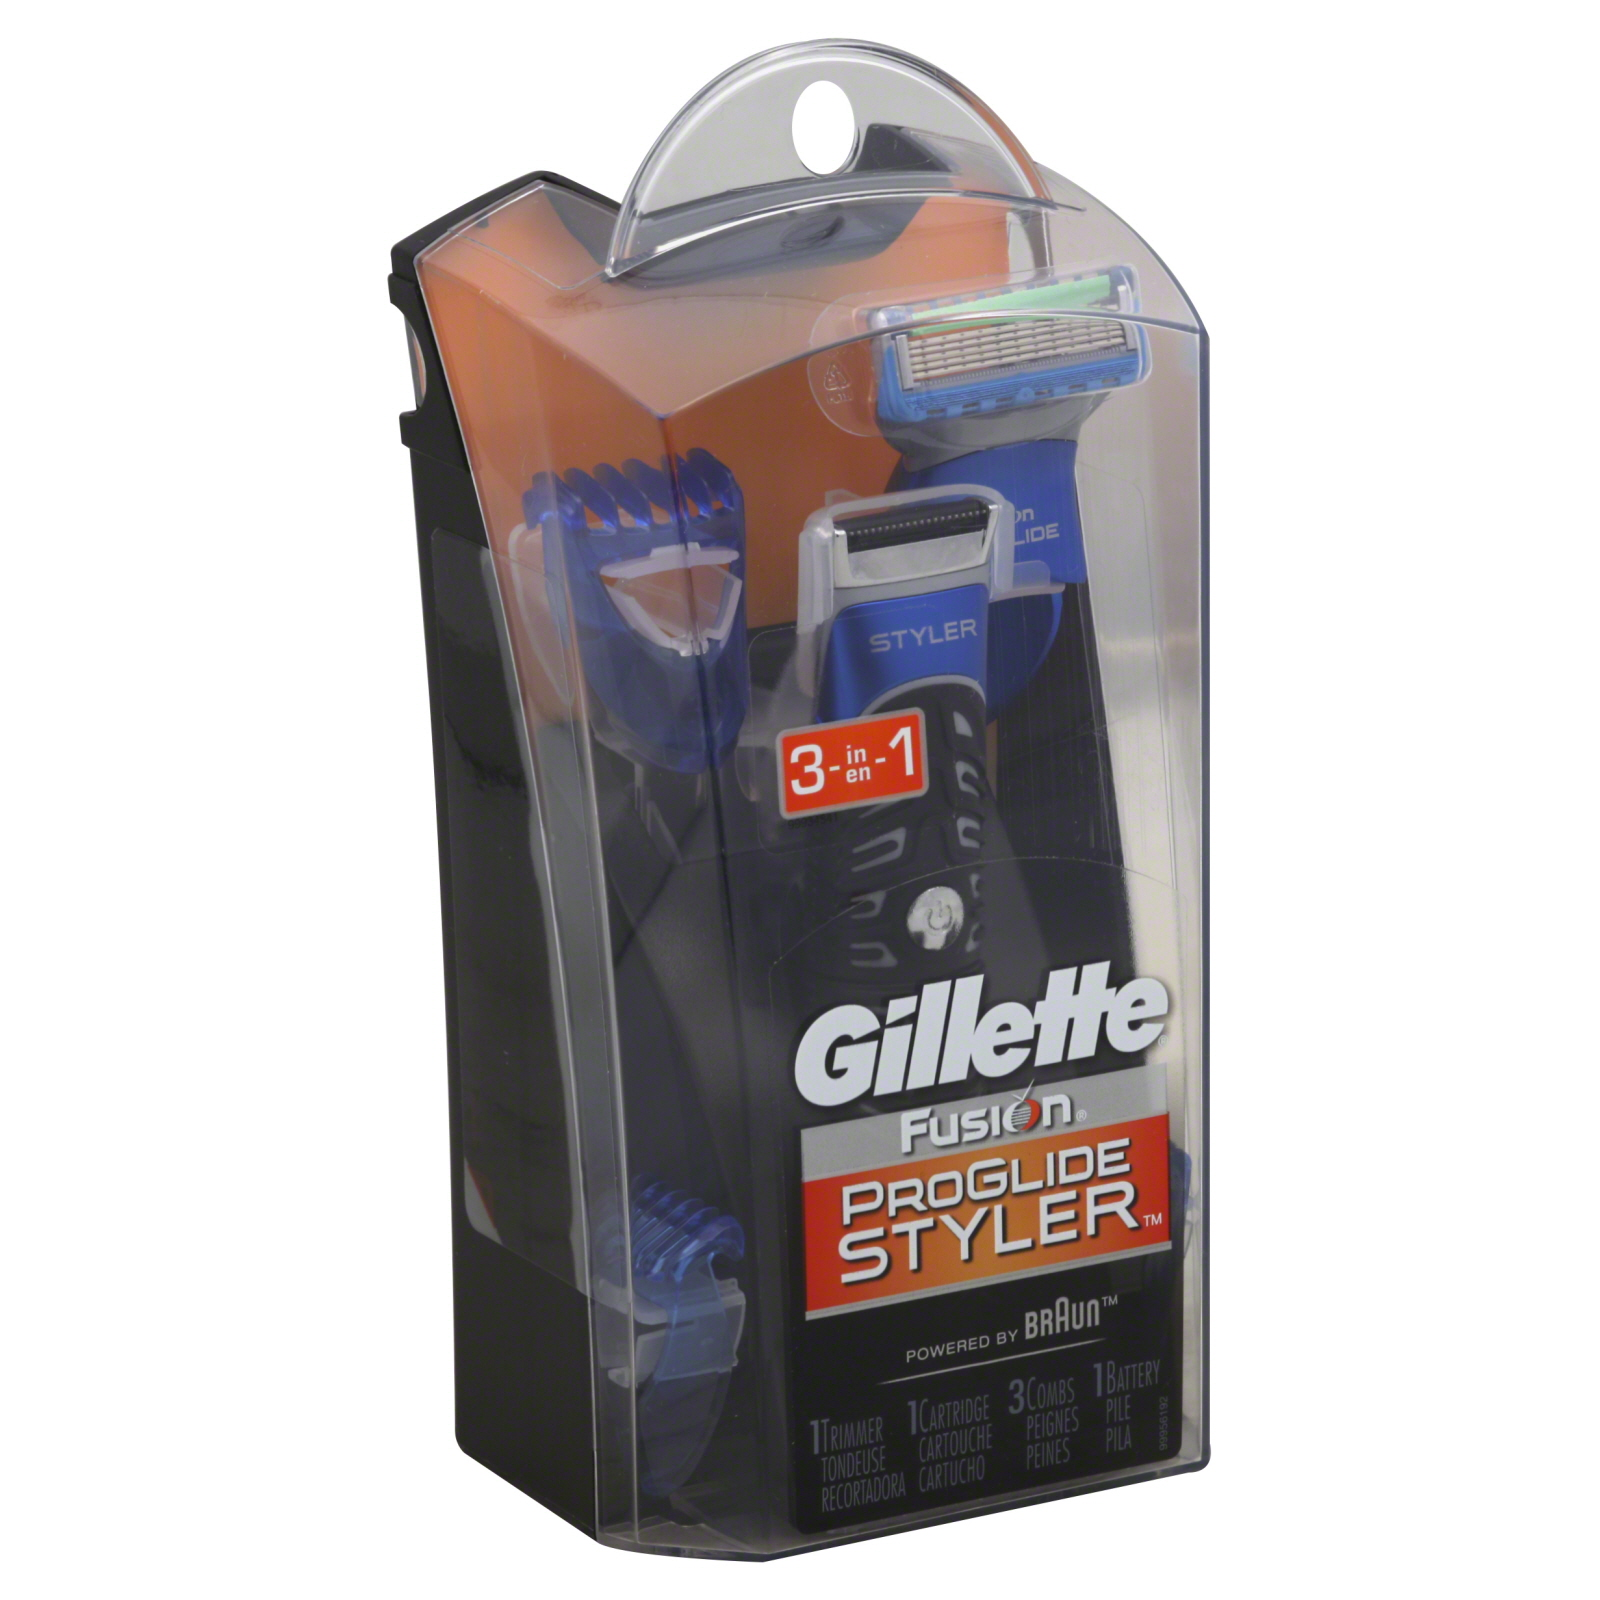 Gillette Fusion ProGlide Styler, 3-in-1, 1 kit